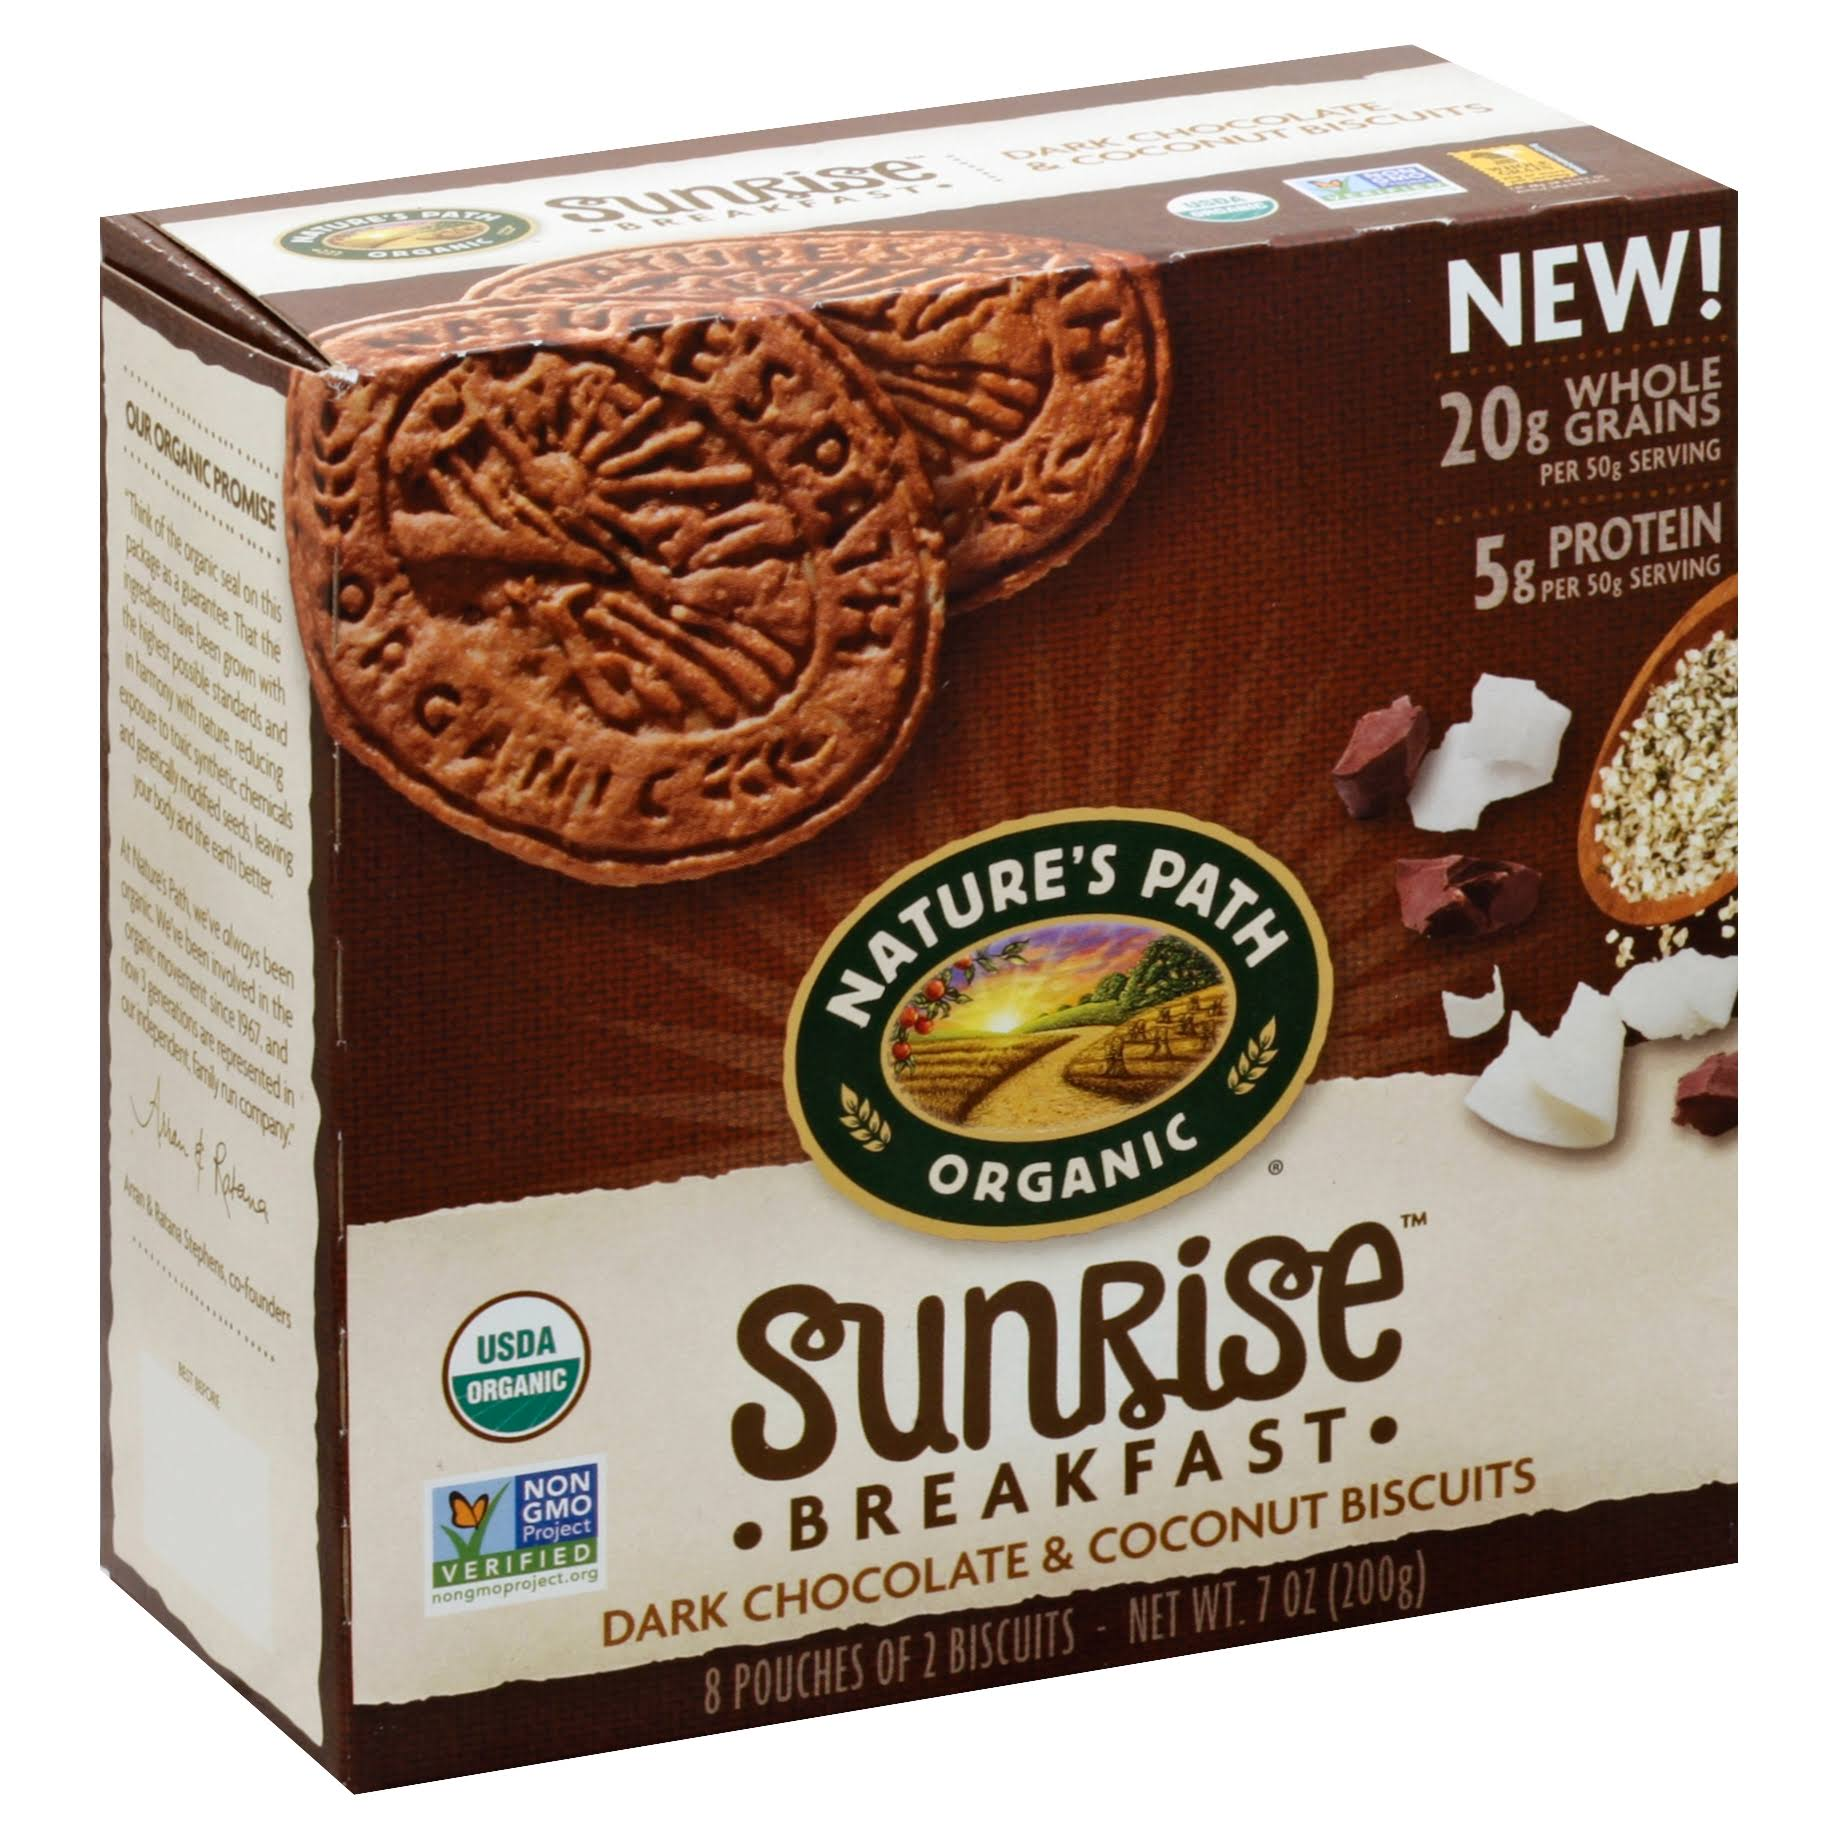 Natures Path Sunrise Breakfast Biscuits, Dark Chocolate & Coconut - 8 pouches, 7 oz